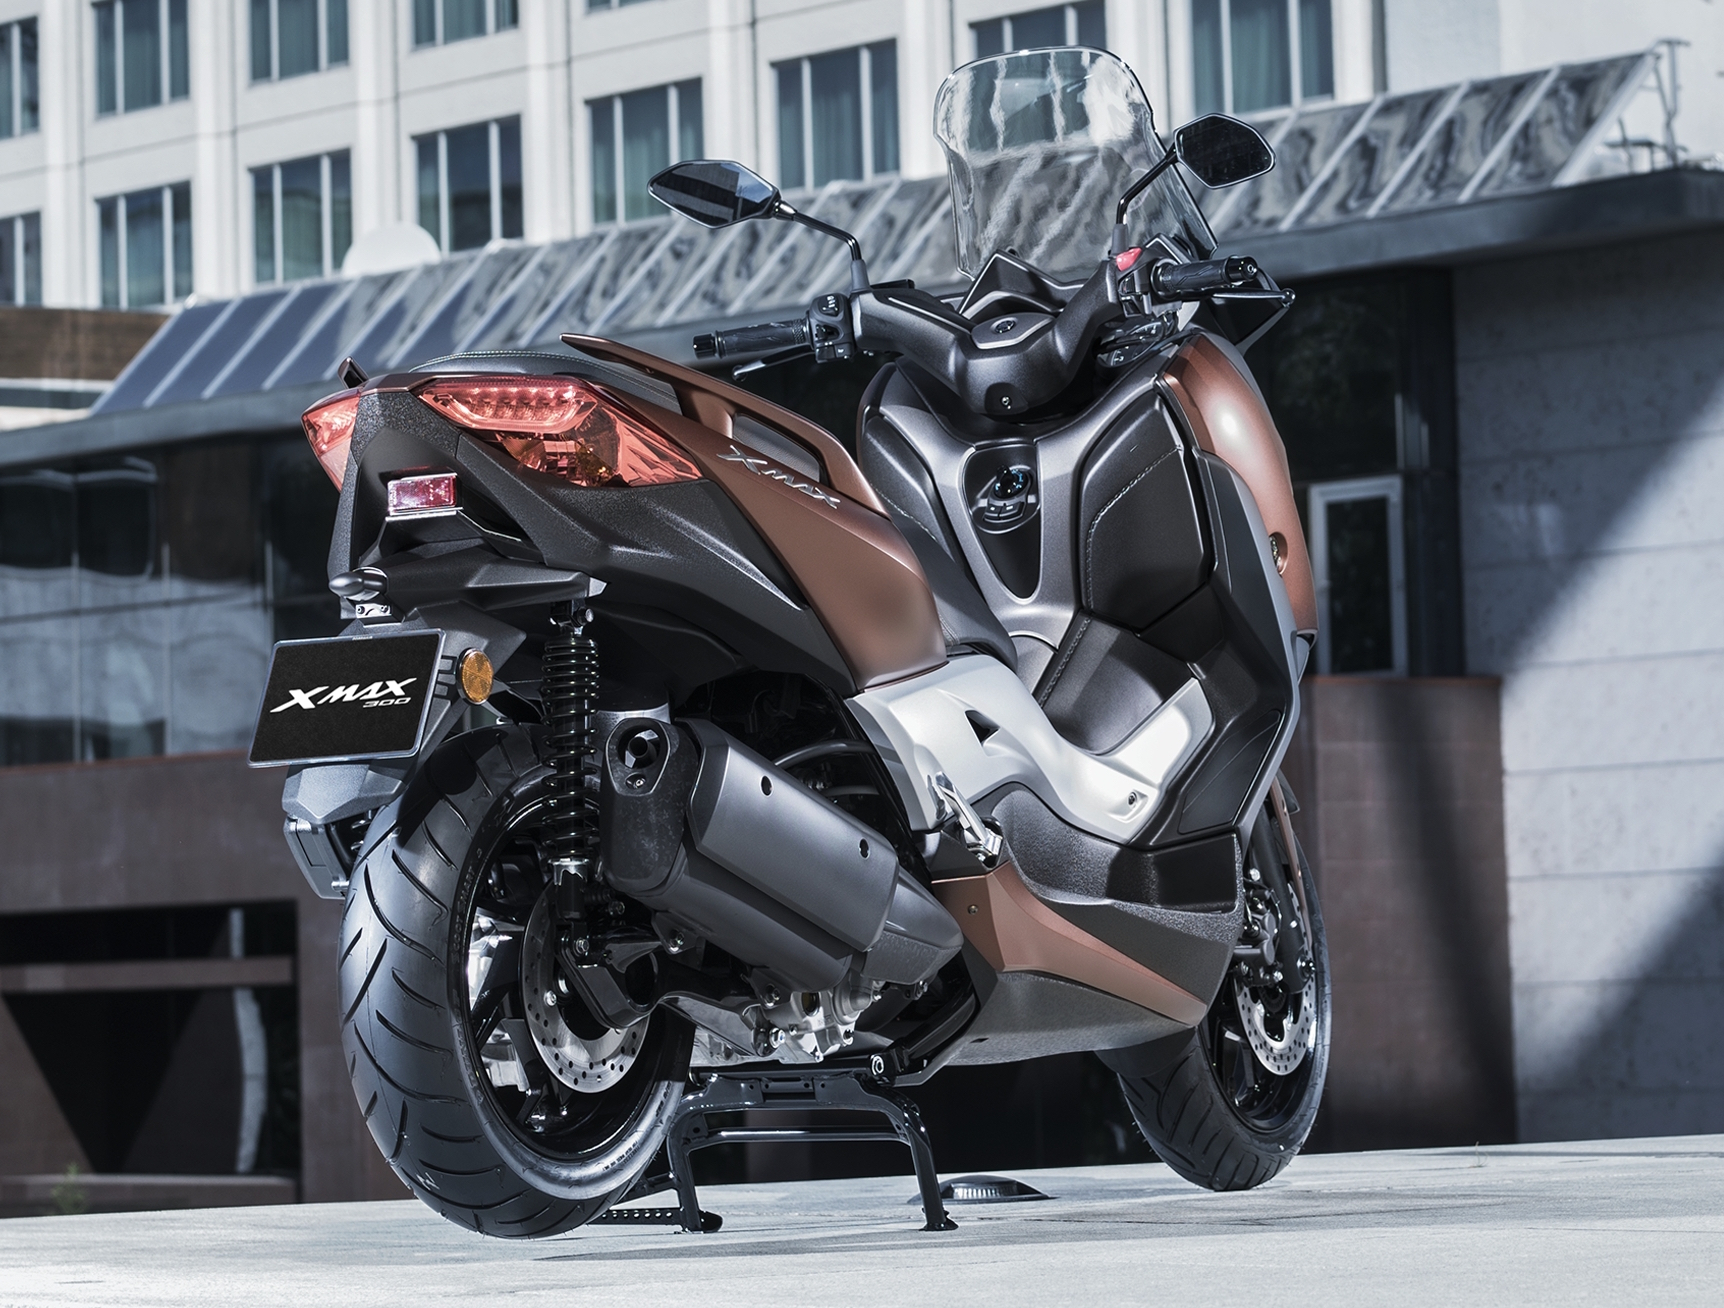 2017 yamaha x max 300 scooter launched in europe paul tan. Black Bedroom Furniture Sets. Home Design Ideas